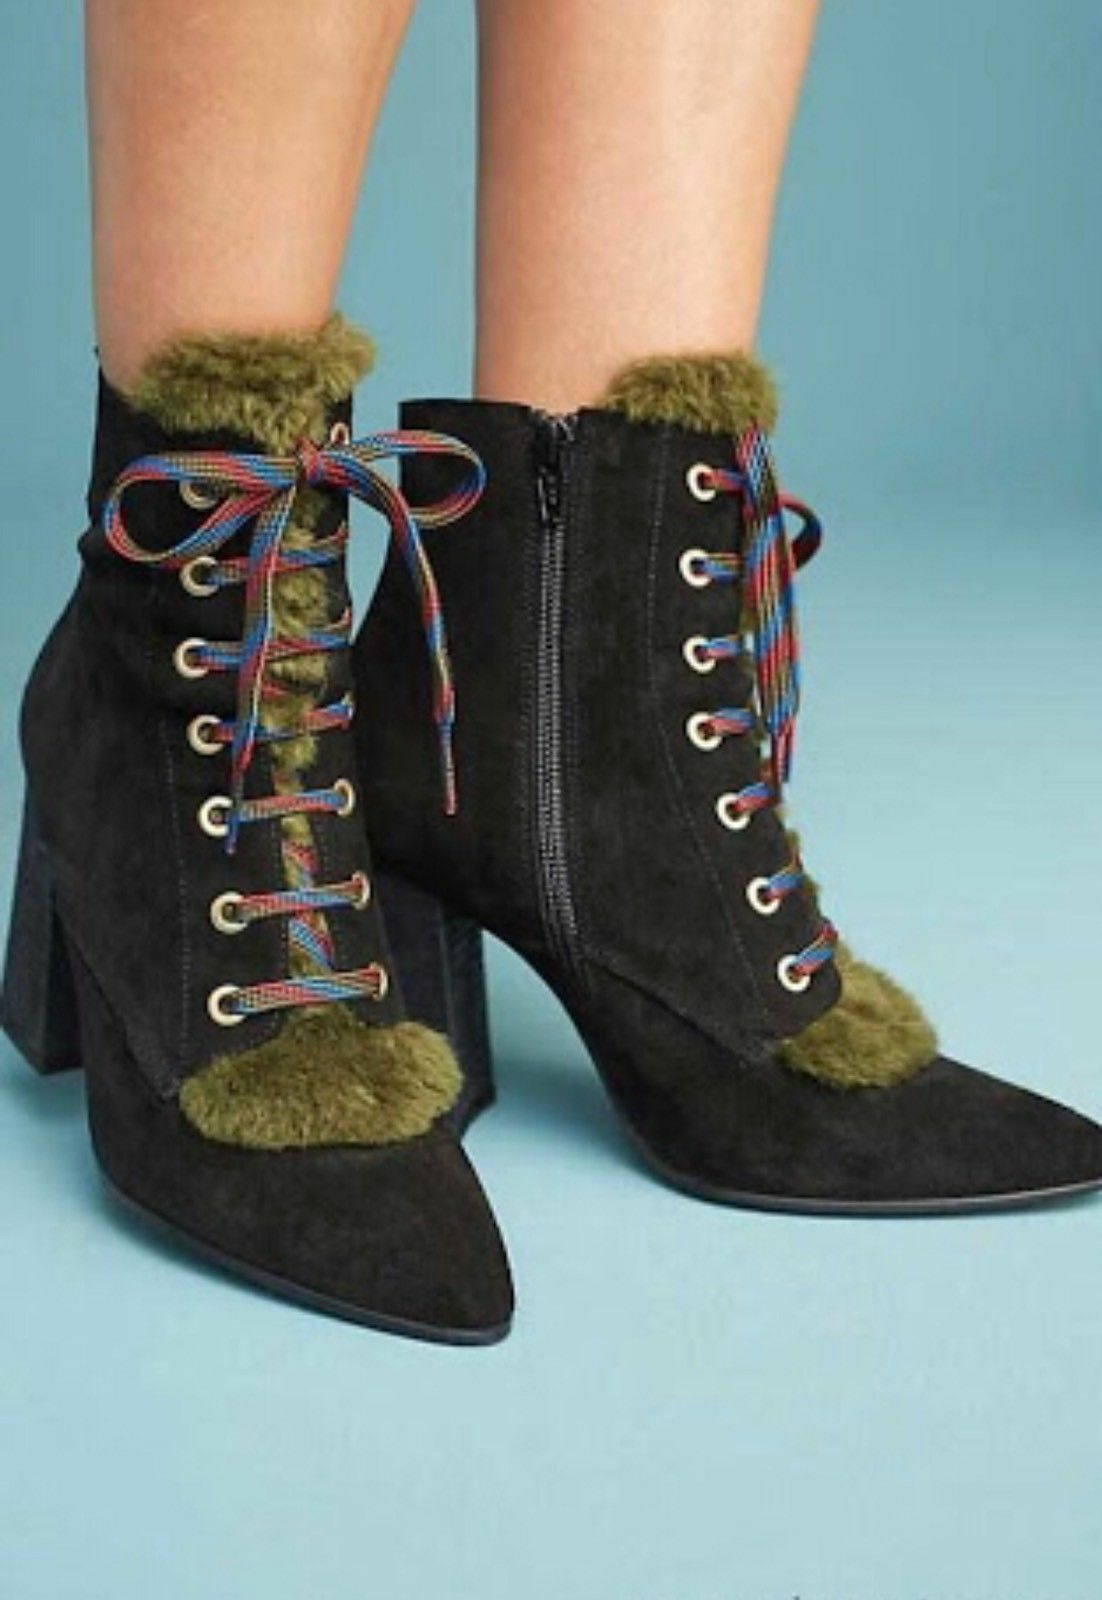 Anthropologie nero Suede Leather Fur Tongue Laceup Heeled avvioies stivali 40 New